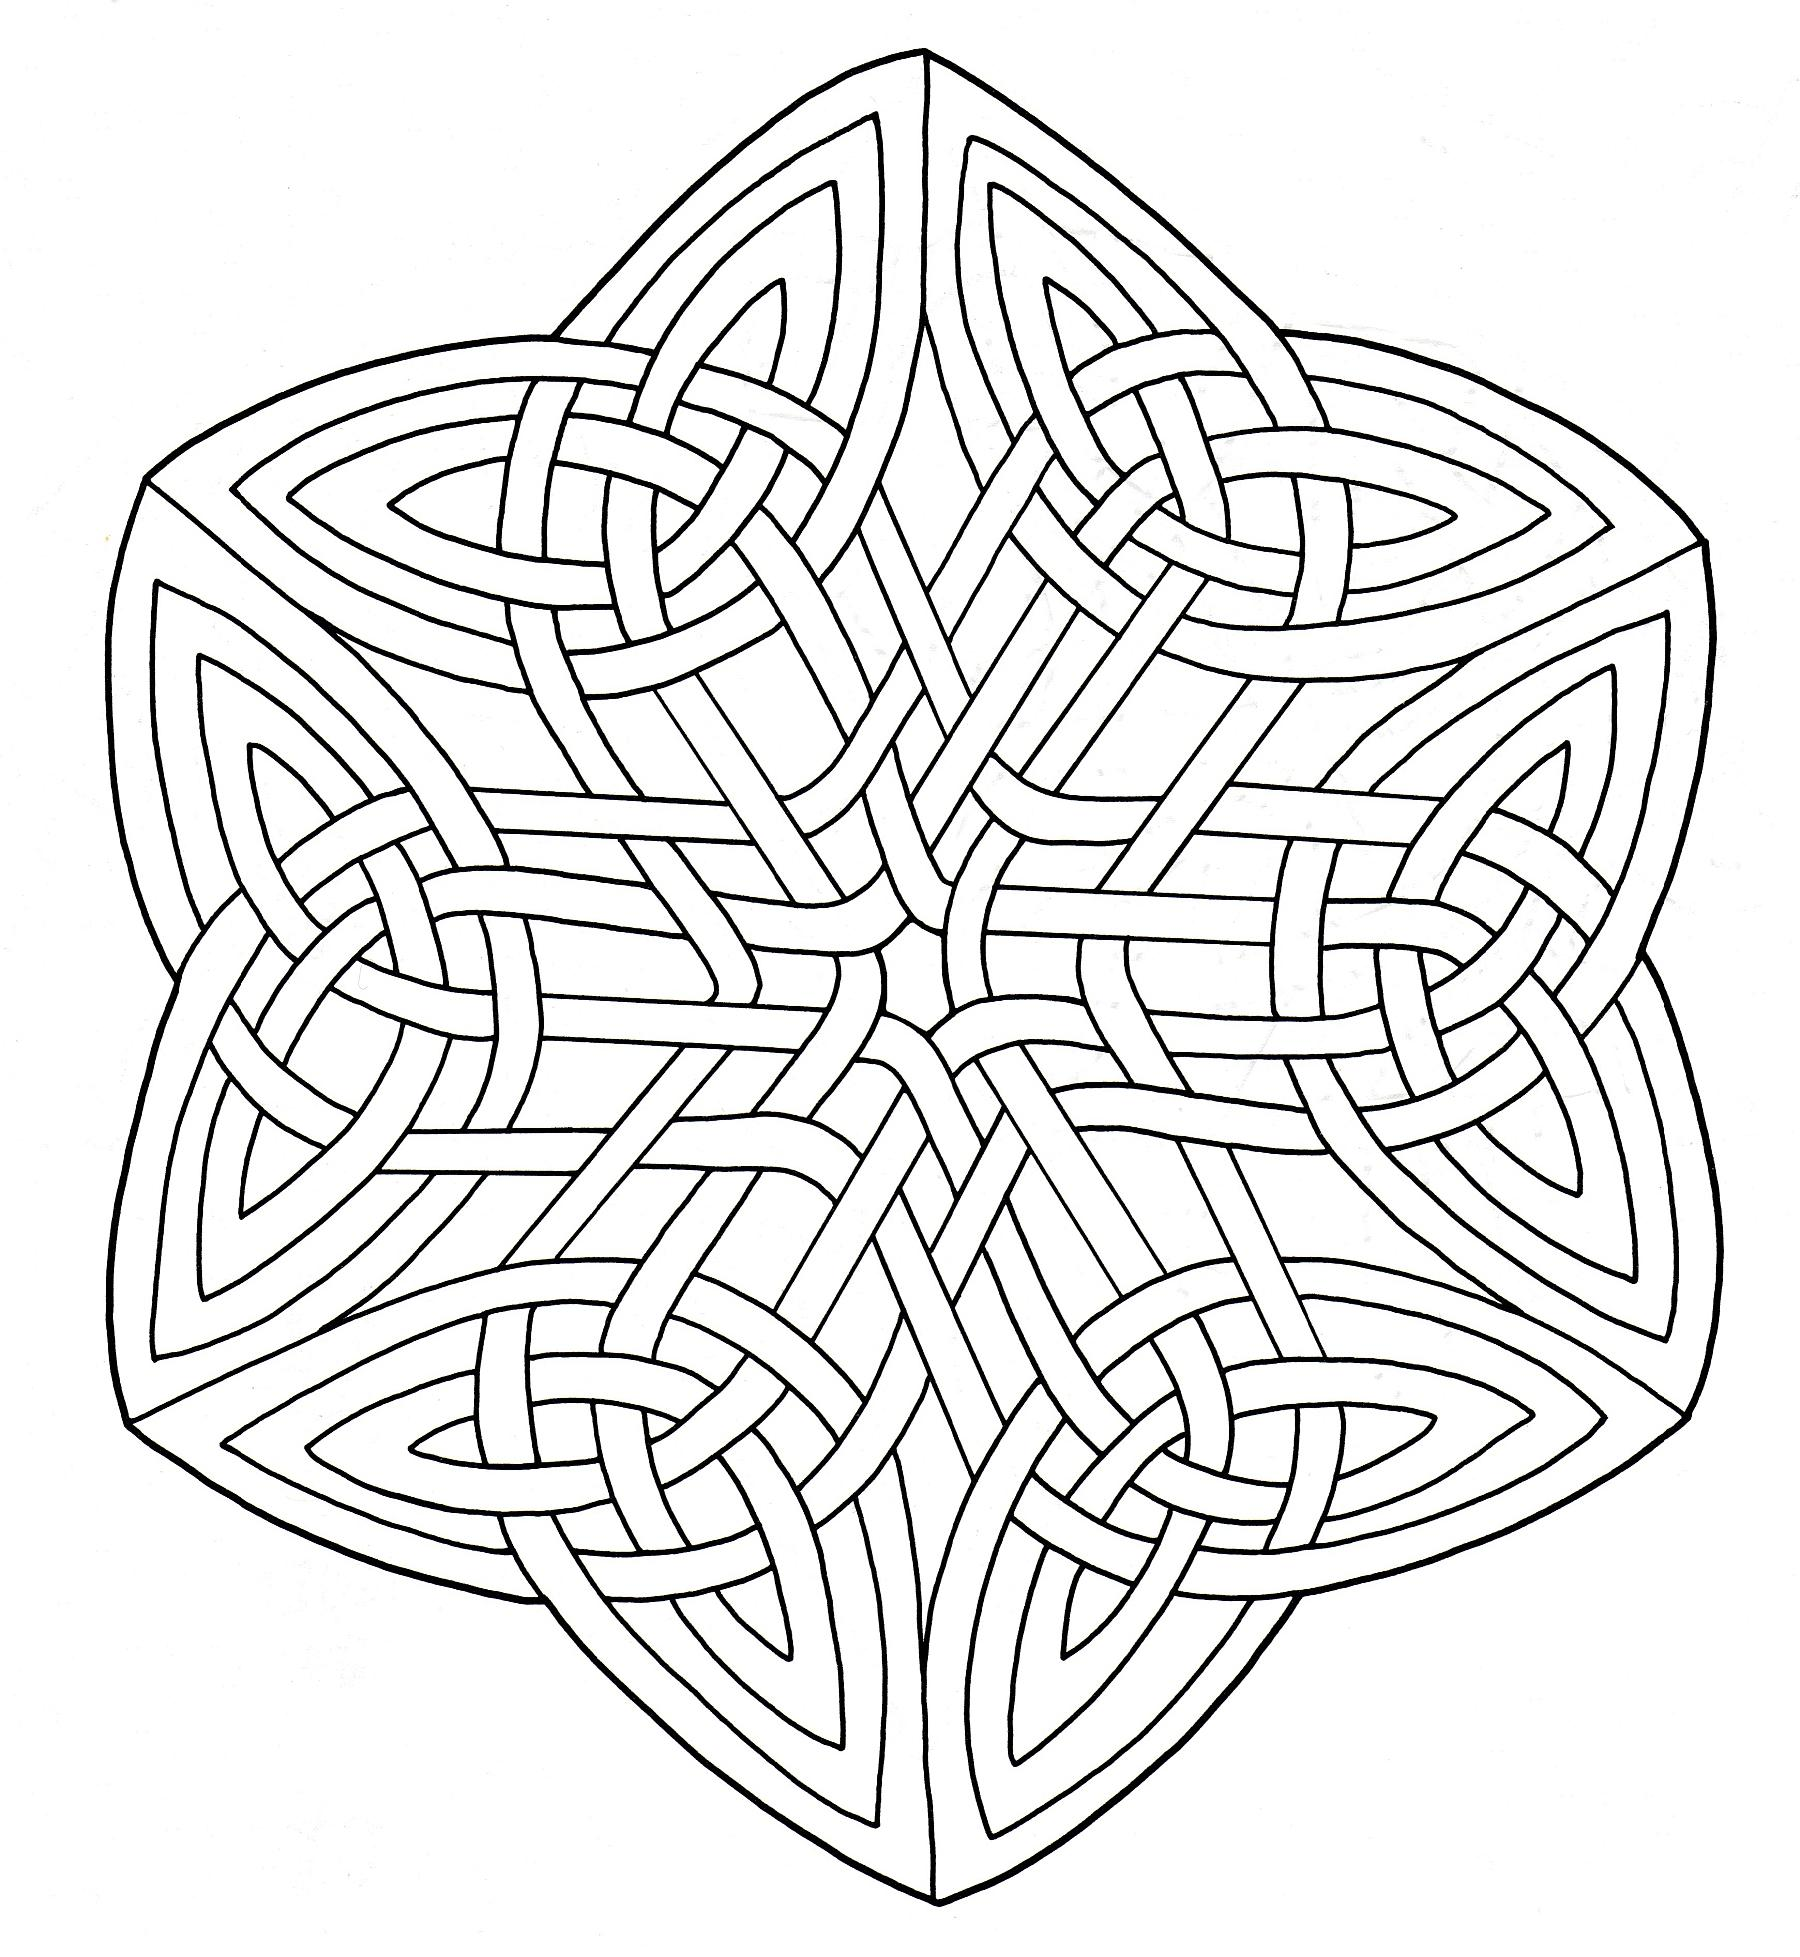 Intricate Design inspired by Celtic Art